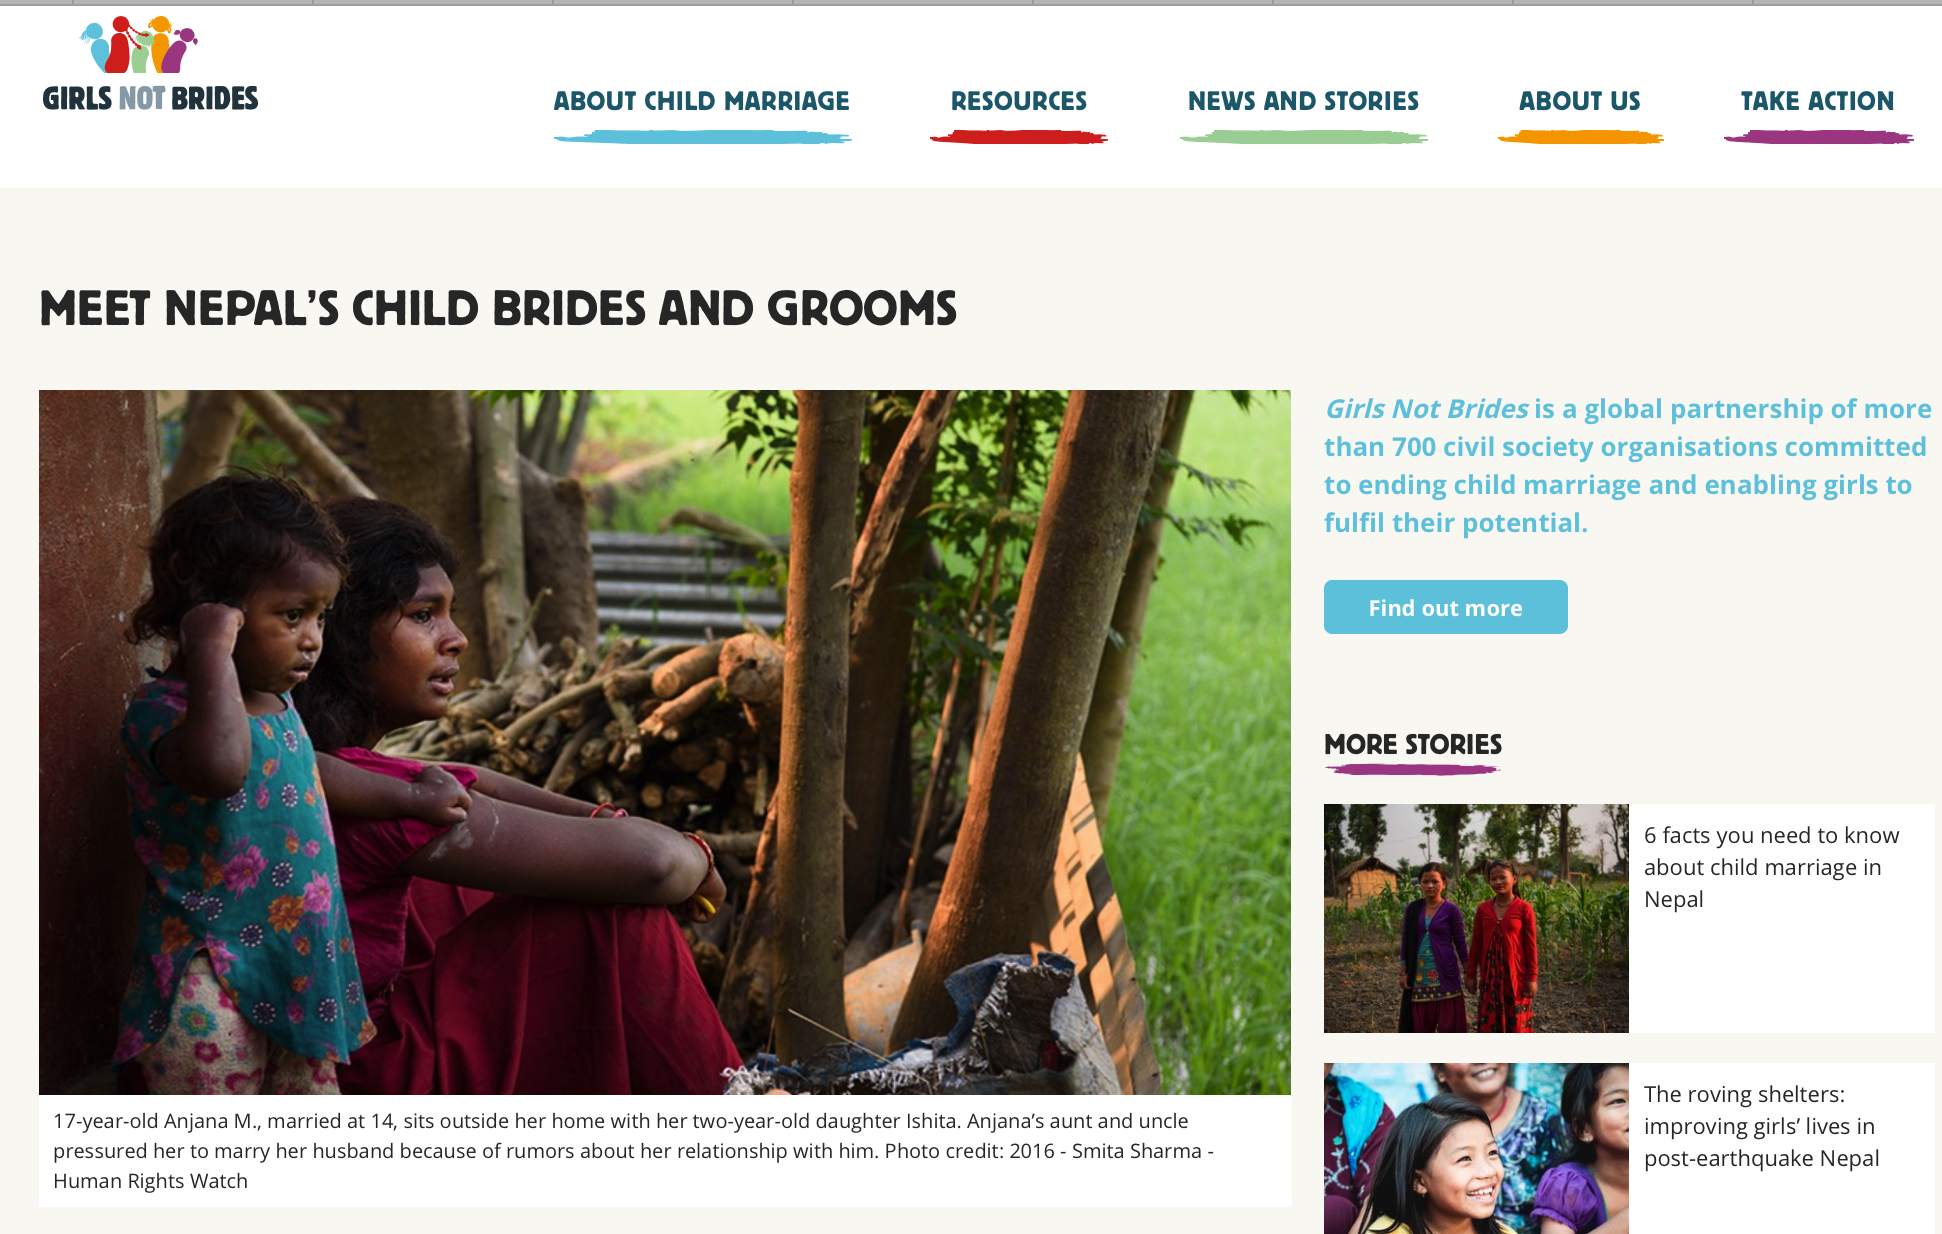 https://www.girlsnotbrides.org/girls-voices/nepals-child-brides-and-grooms-in-the-dalit-community/